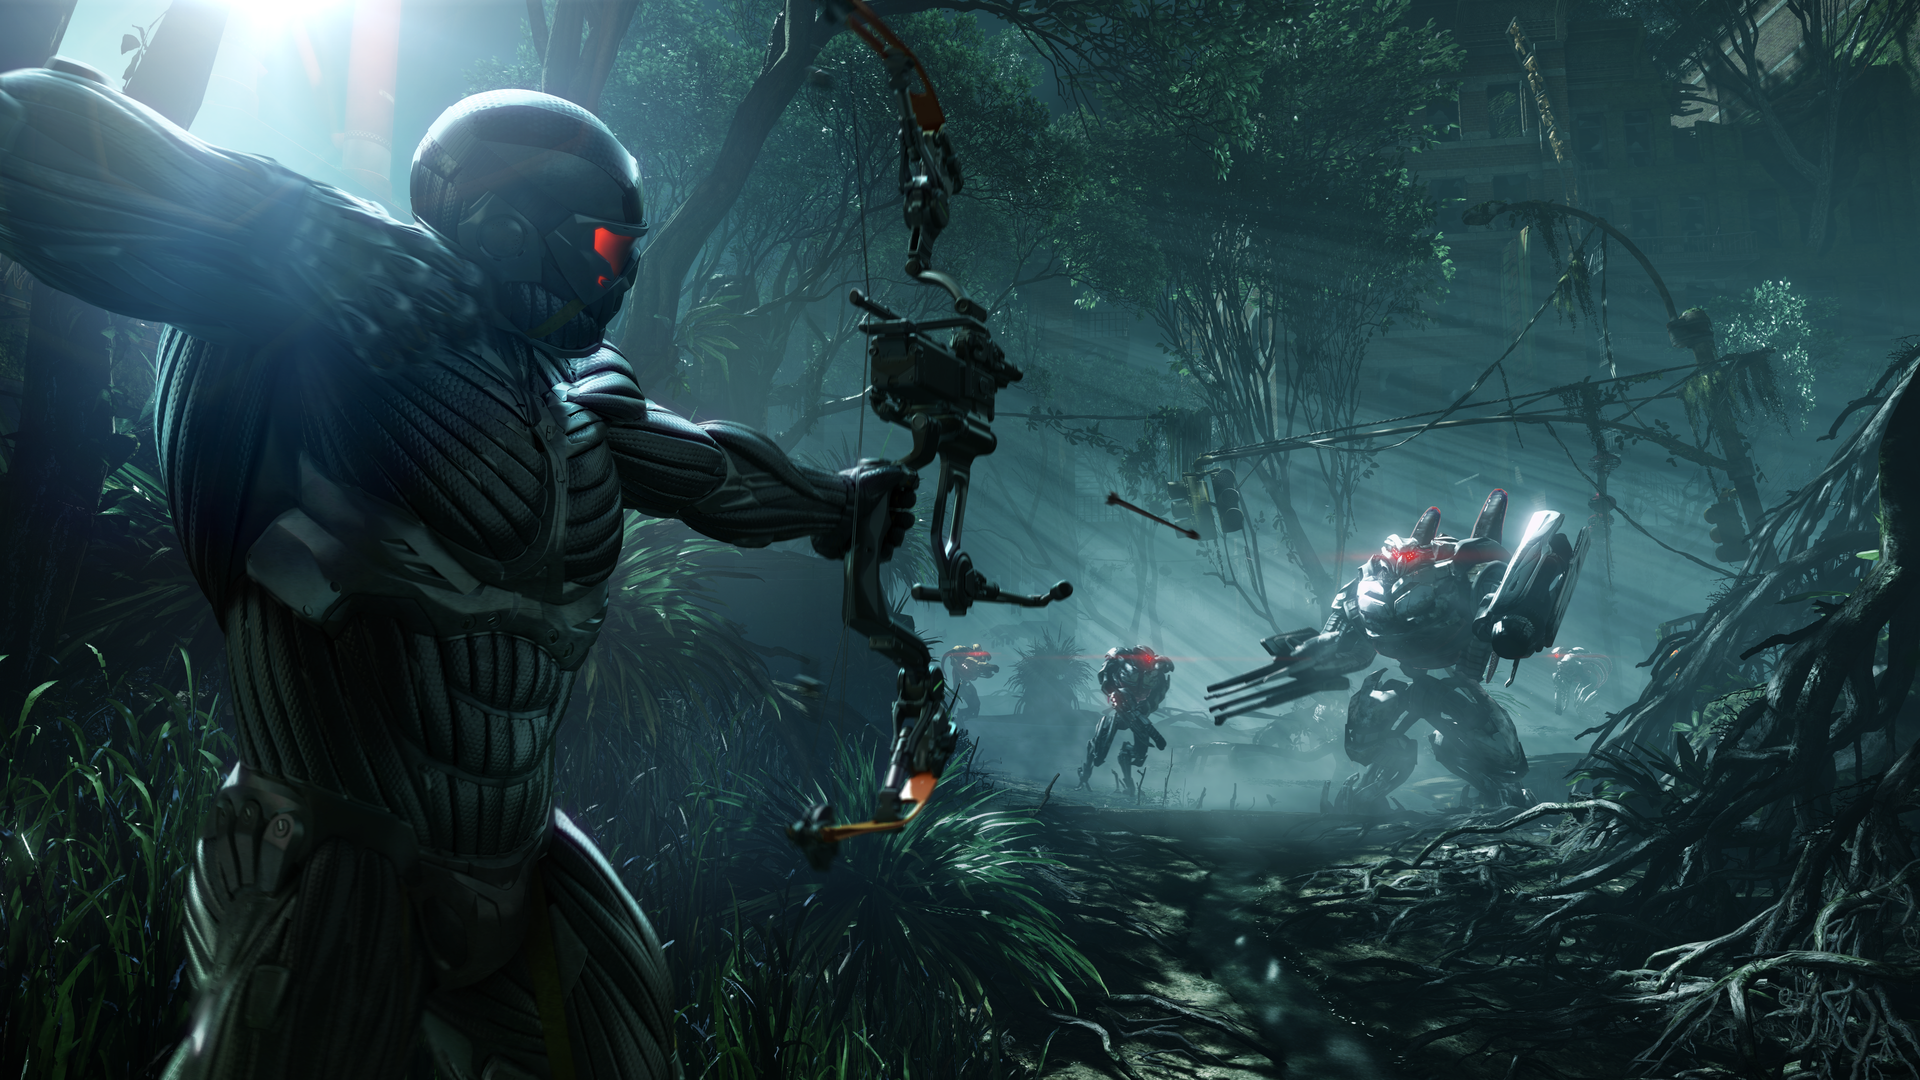 crysis_3_screen_1_-_prophet_the_hunter